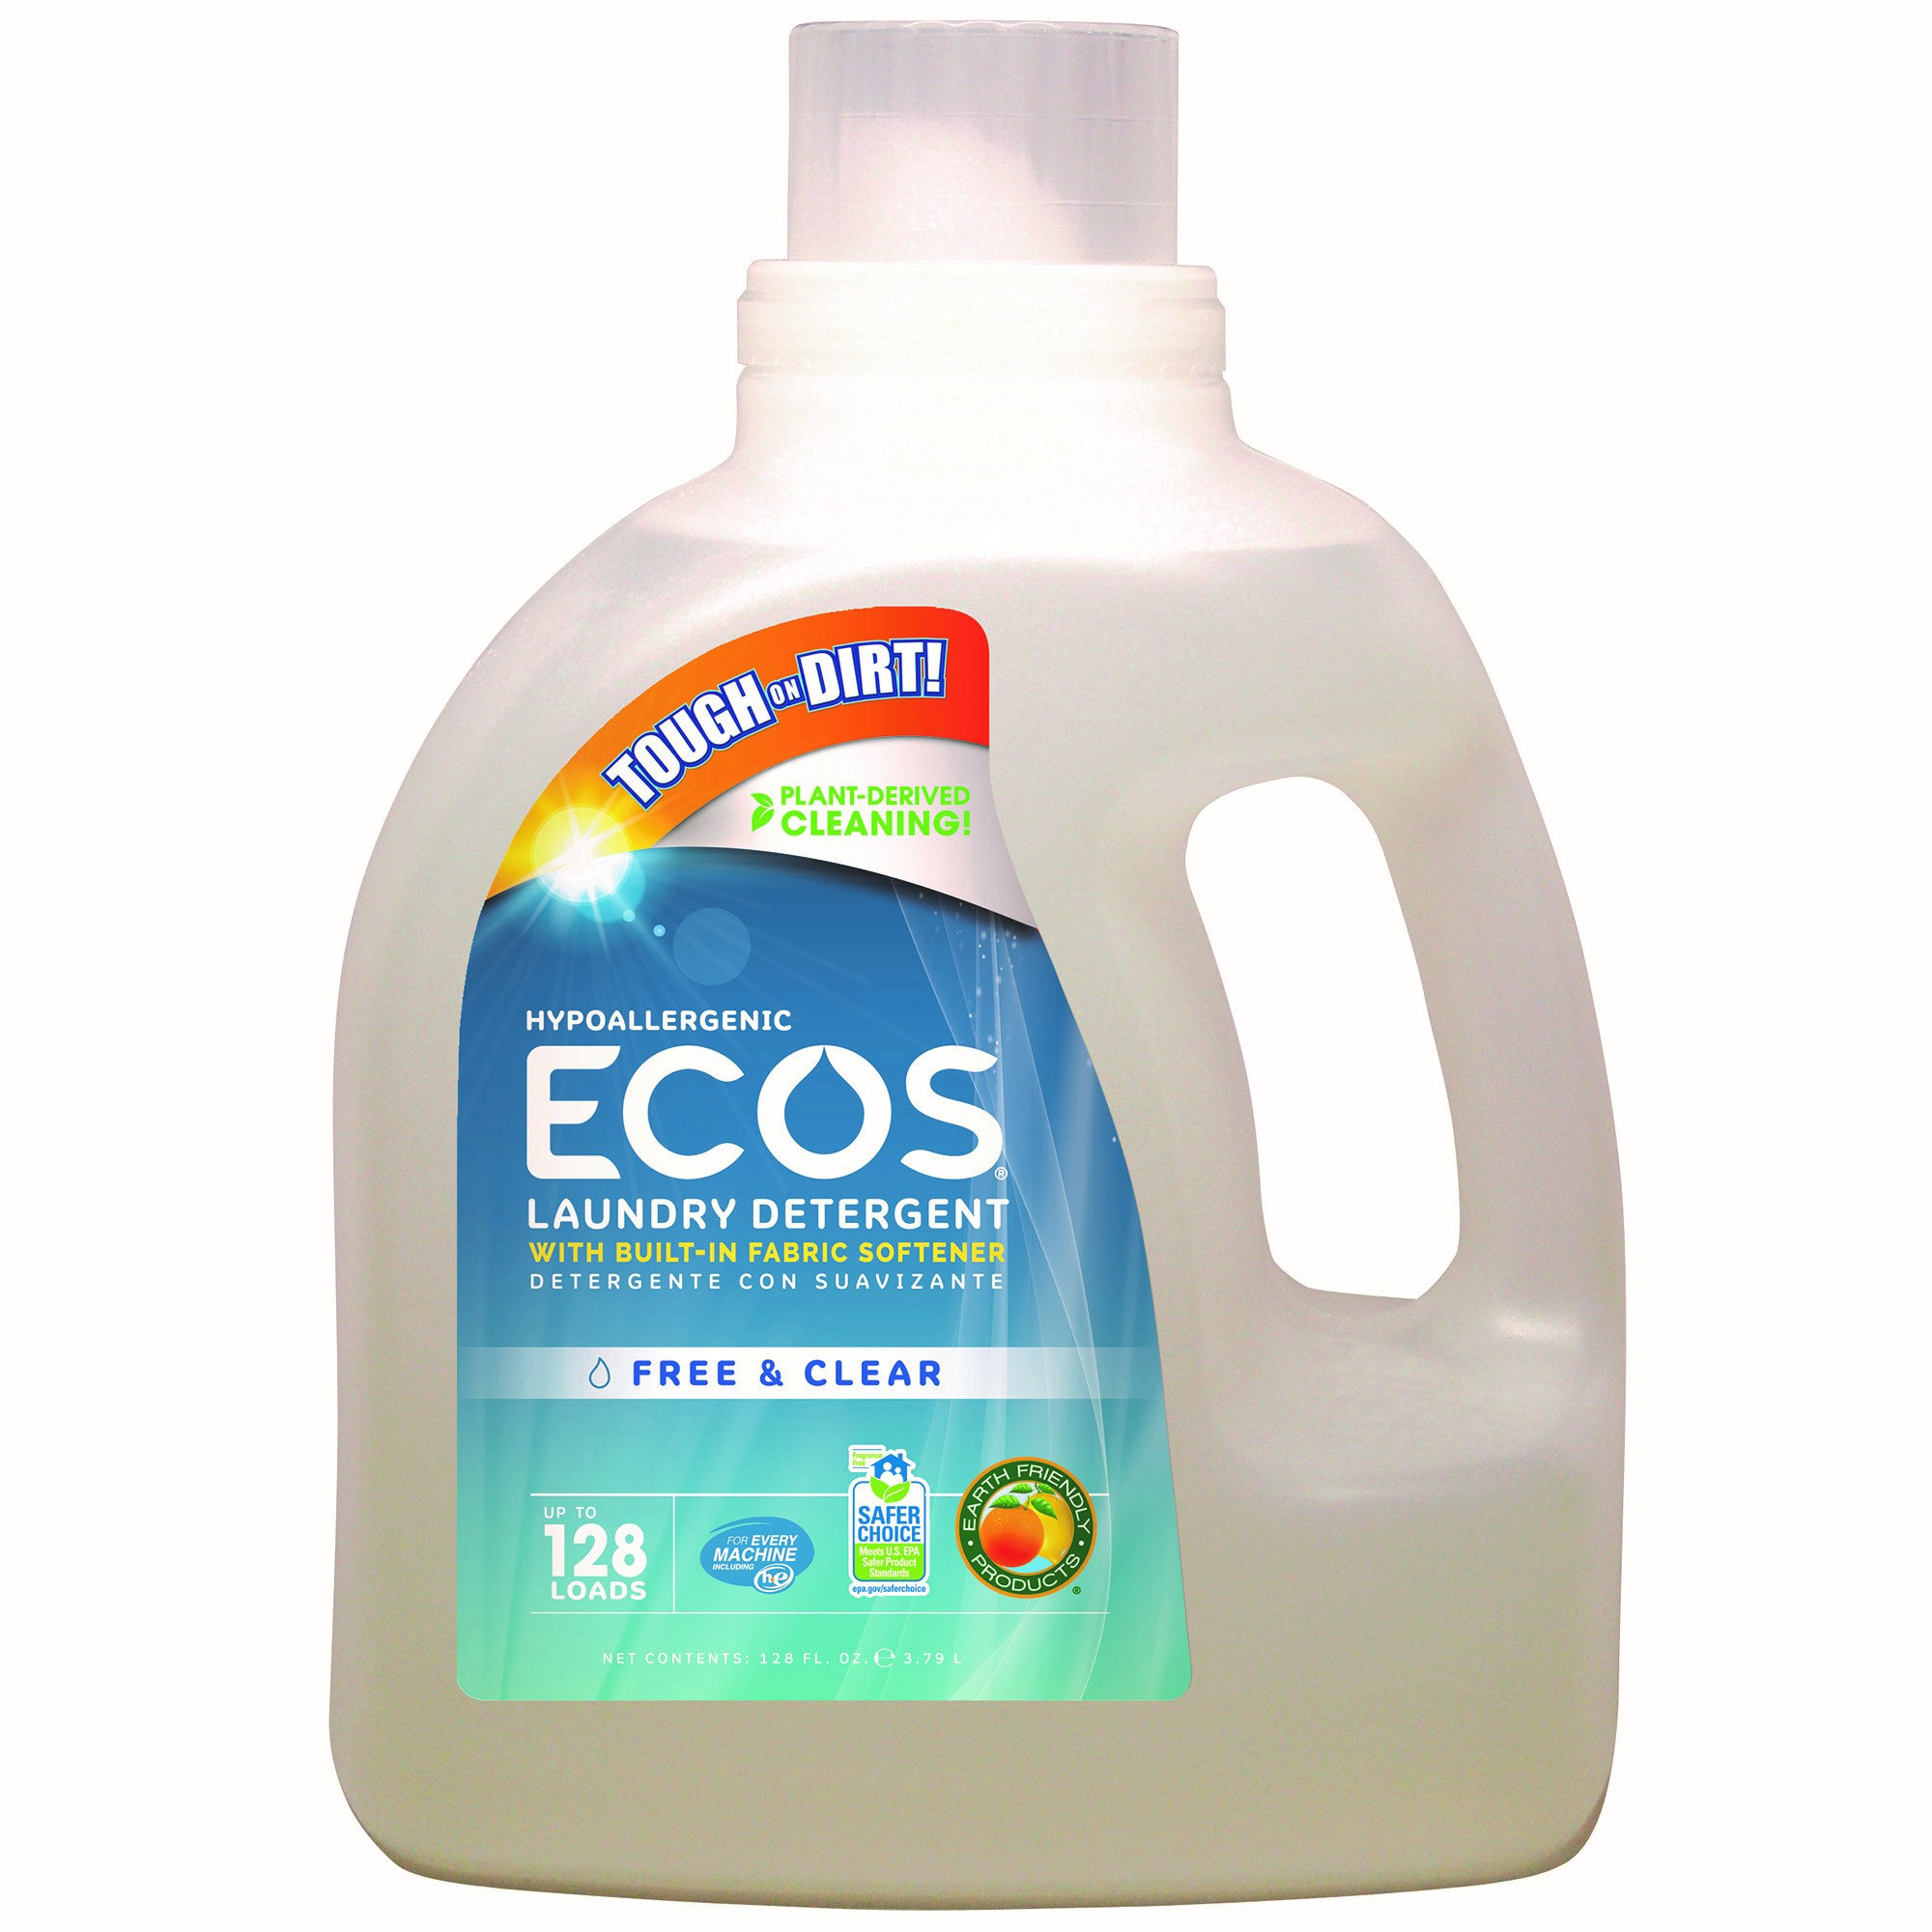 ECOS Liquid Laundry Detergent Free & Clear, 128 Oz